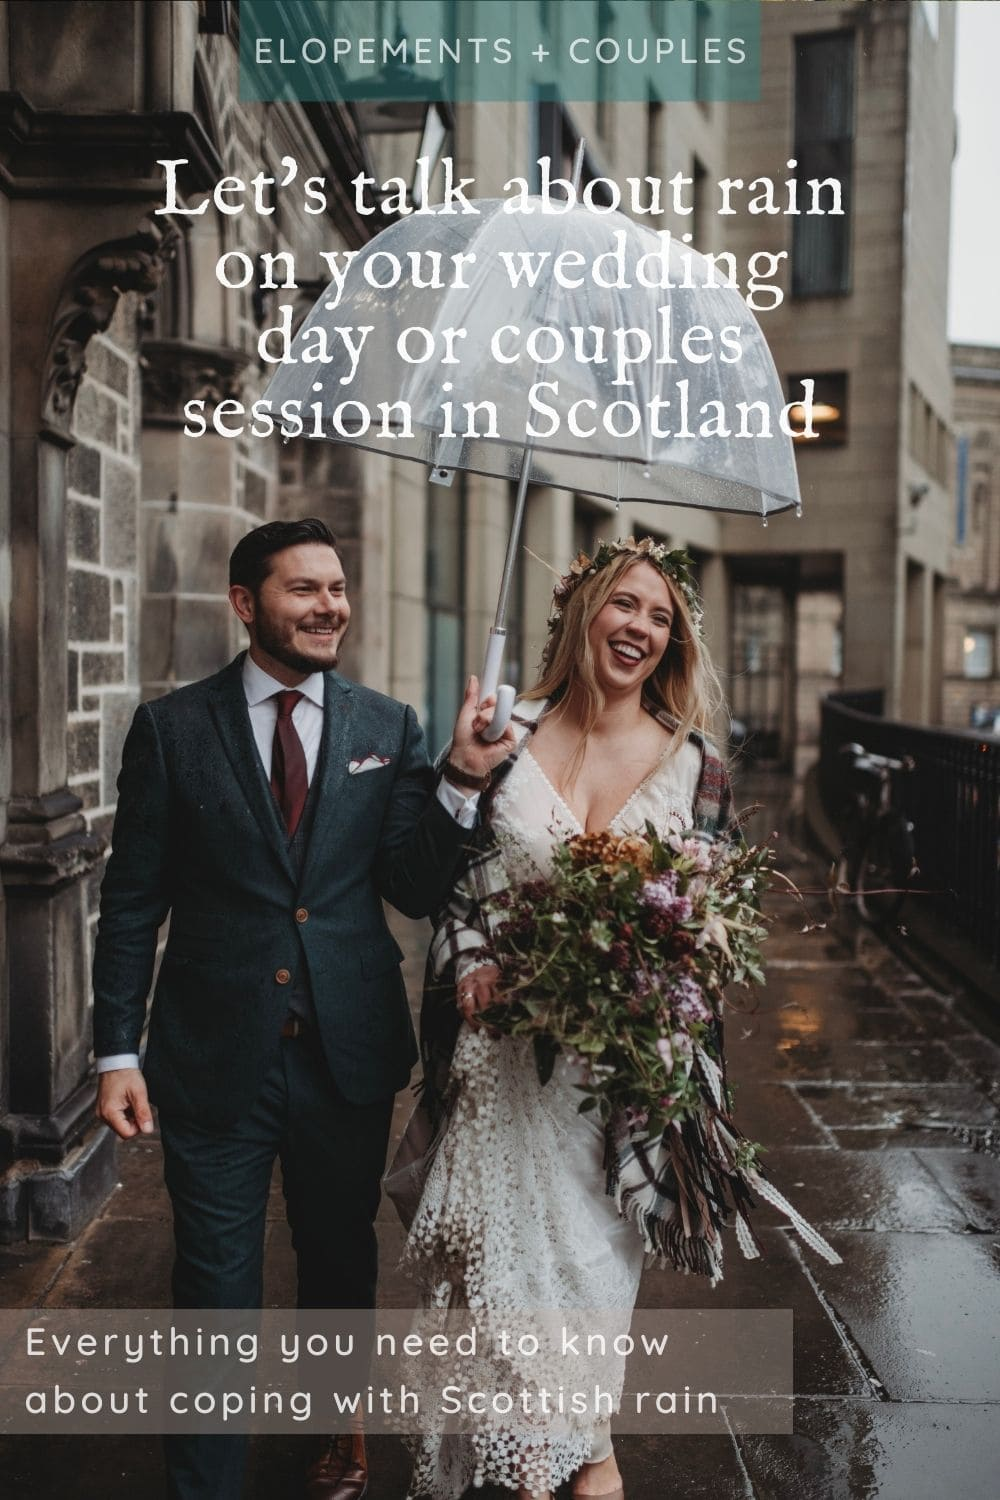 Guide - coping with Scottish rain on your wedding day or couples session